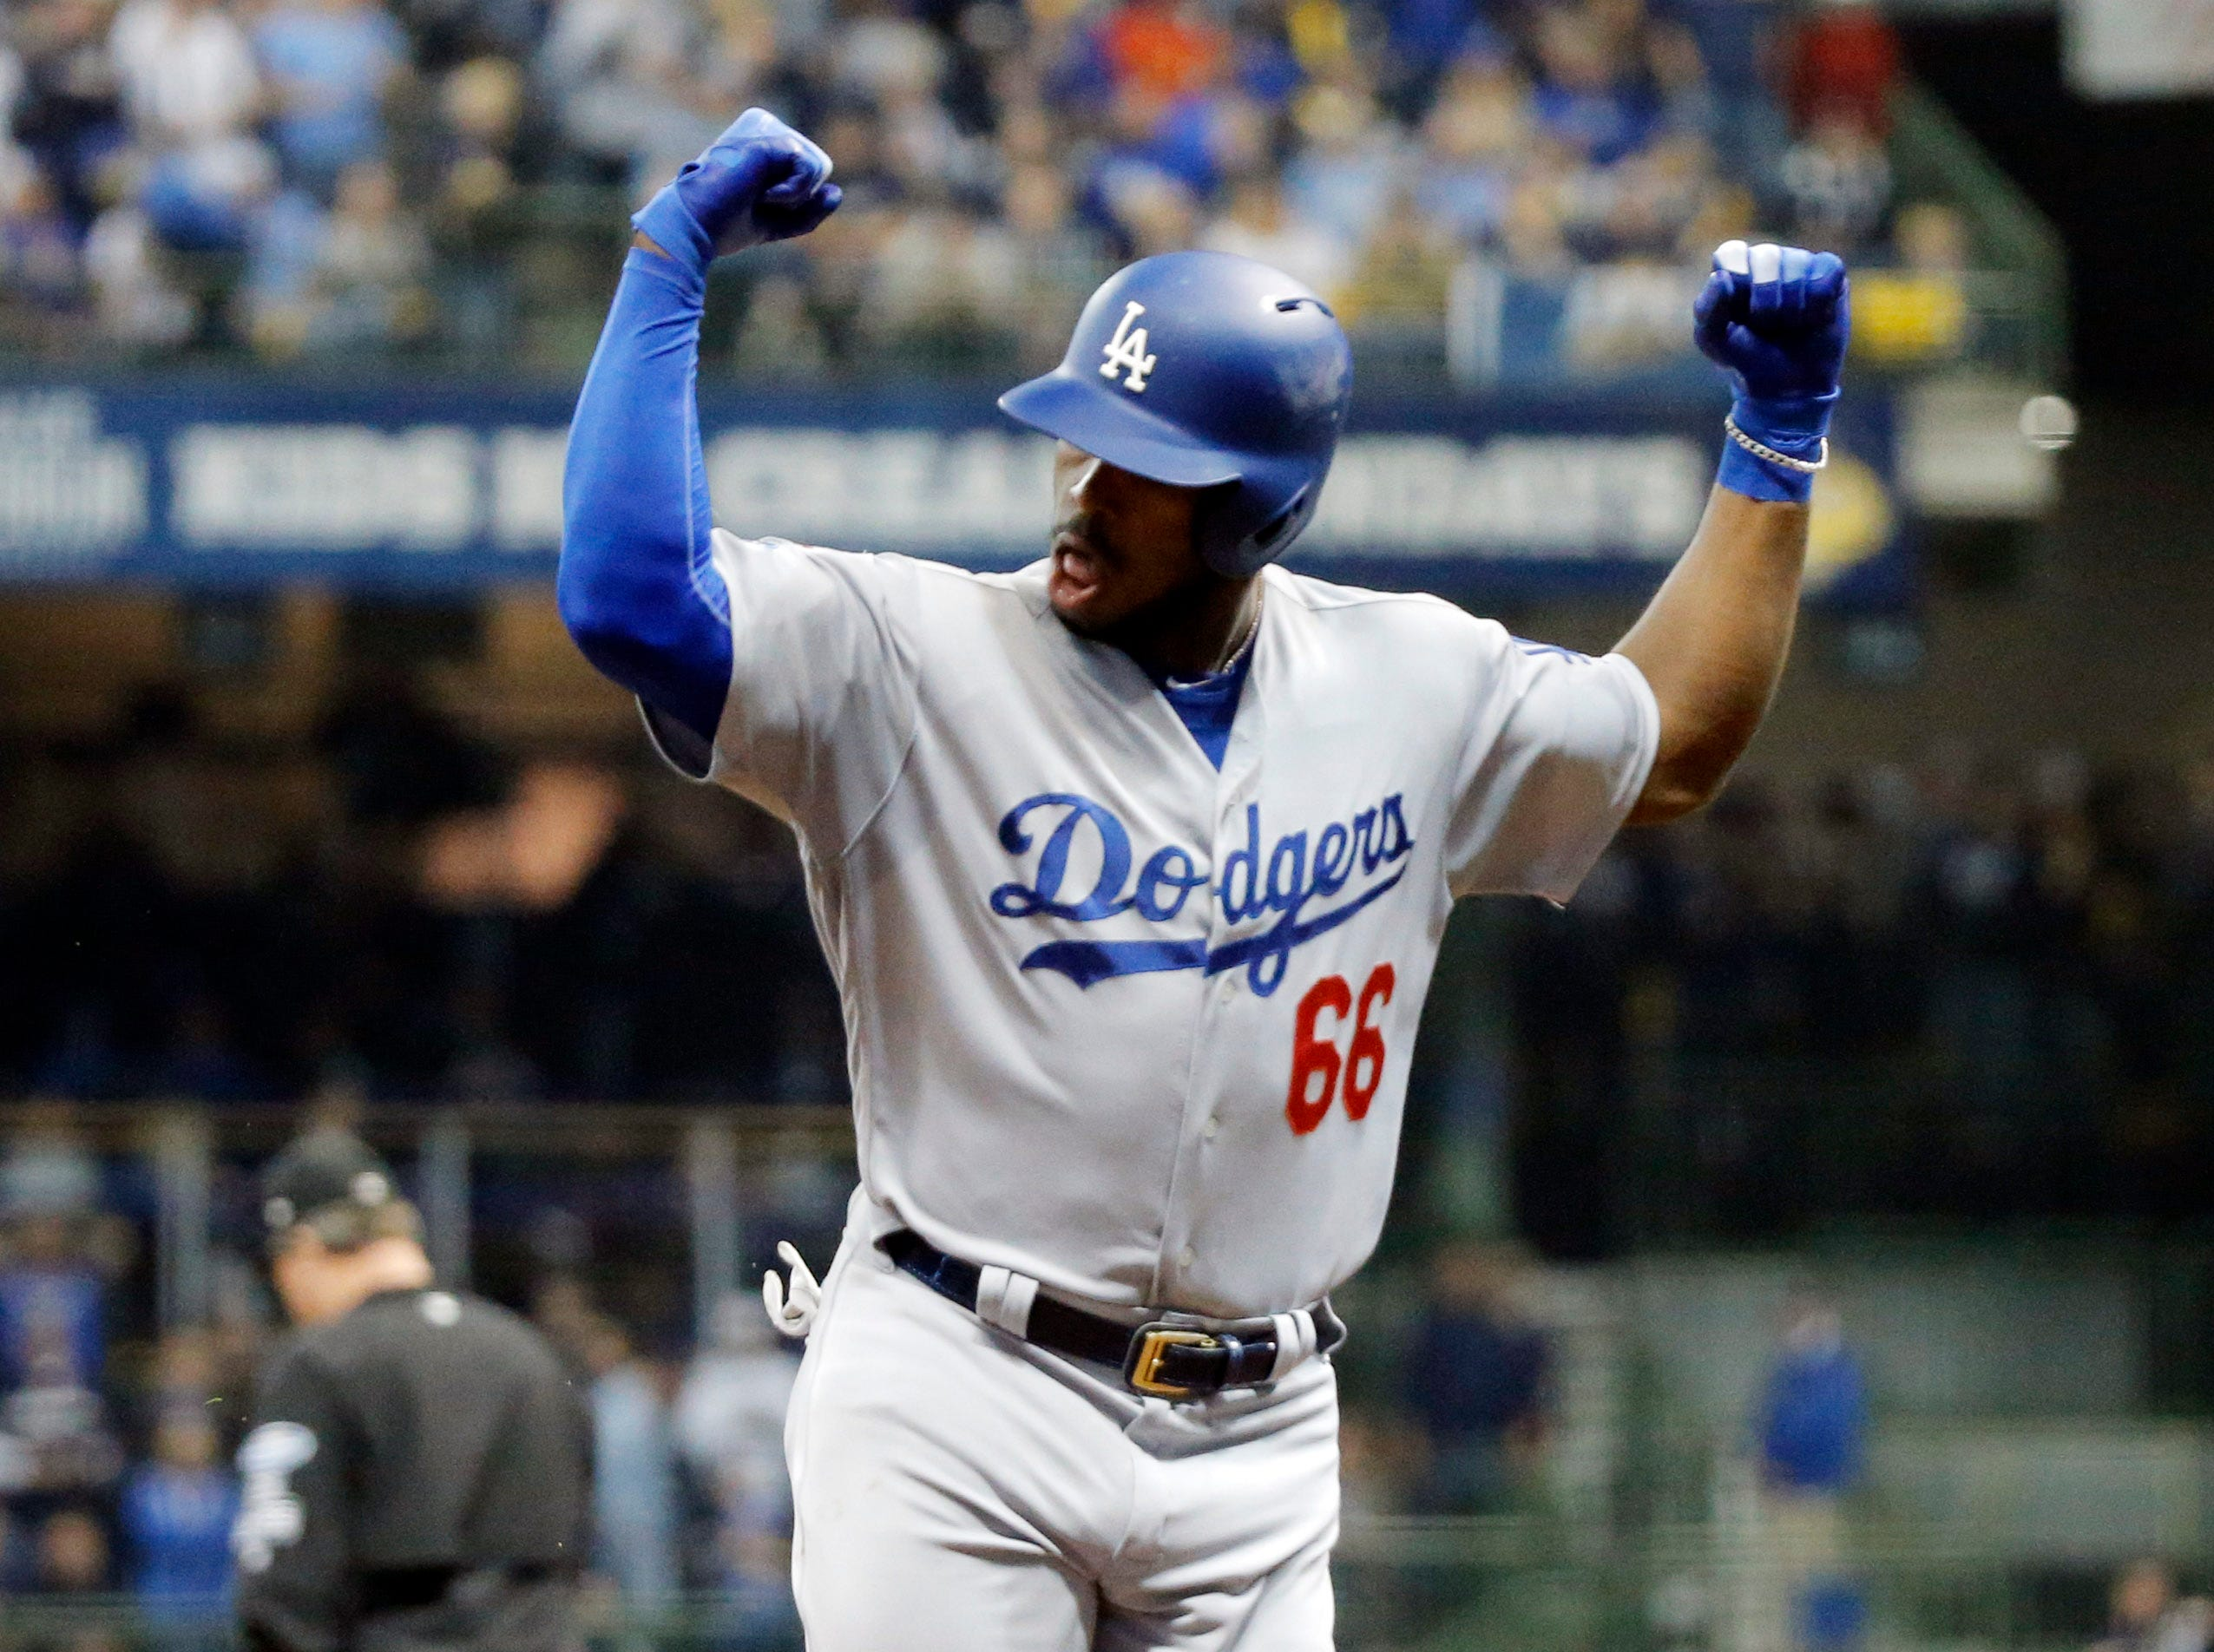 Oct. 20: Los Angeles Dodgers outfielder Yasiel Puig (66) celebrates after hitting a three-run home run against the Milwaukee Brewers in the sixth inning of Game 7 of the NLCS.